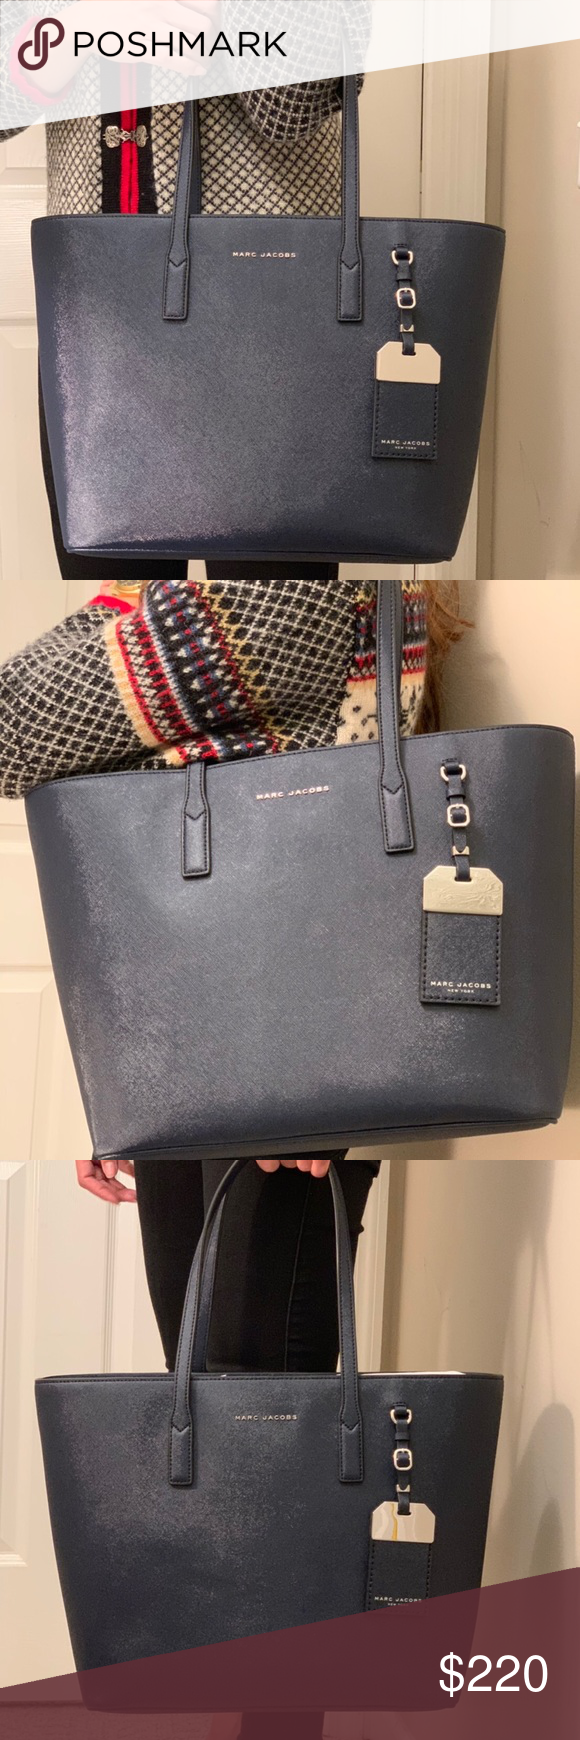 Marc Jacobs Luggage Tag Tote Bag Indigo Leather Chic Accessories Bags Marc Jacobs Bag